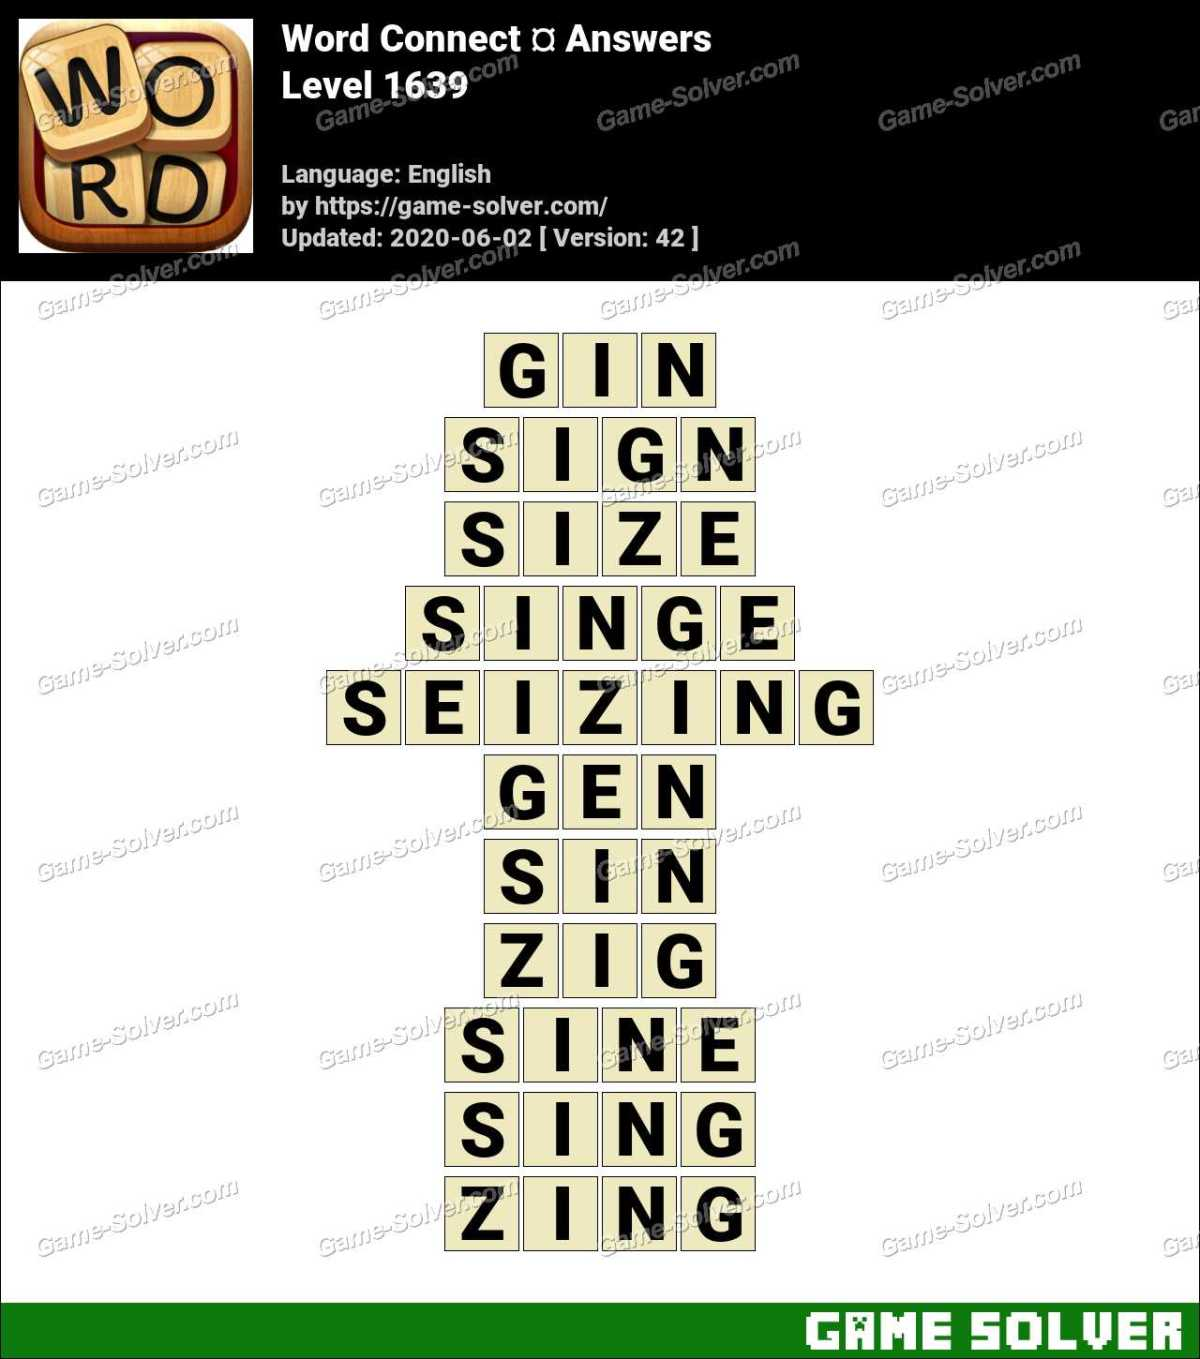 Word Connect Level 1639 Answers